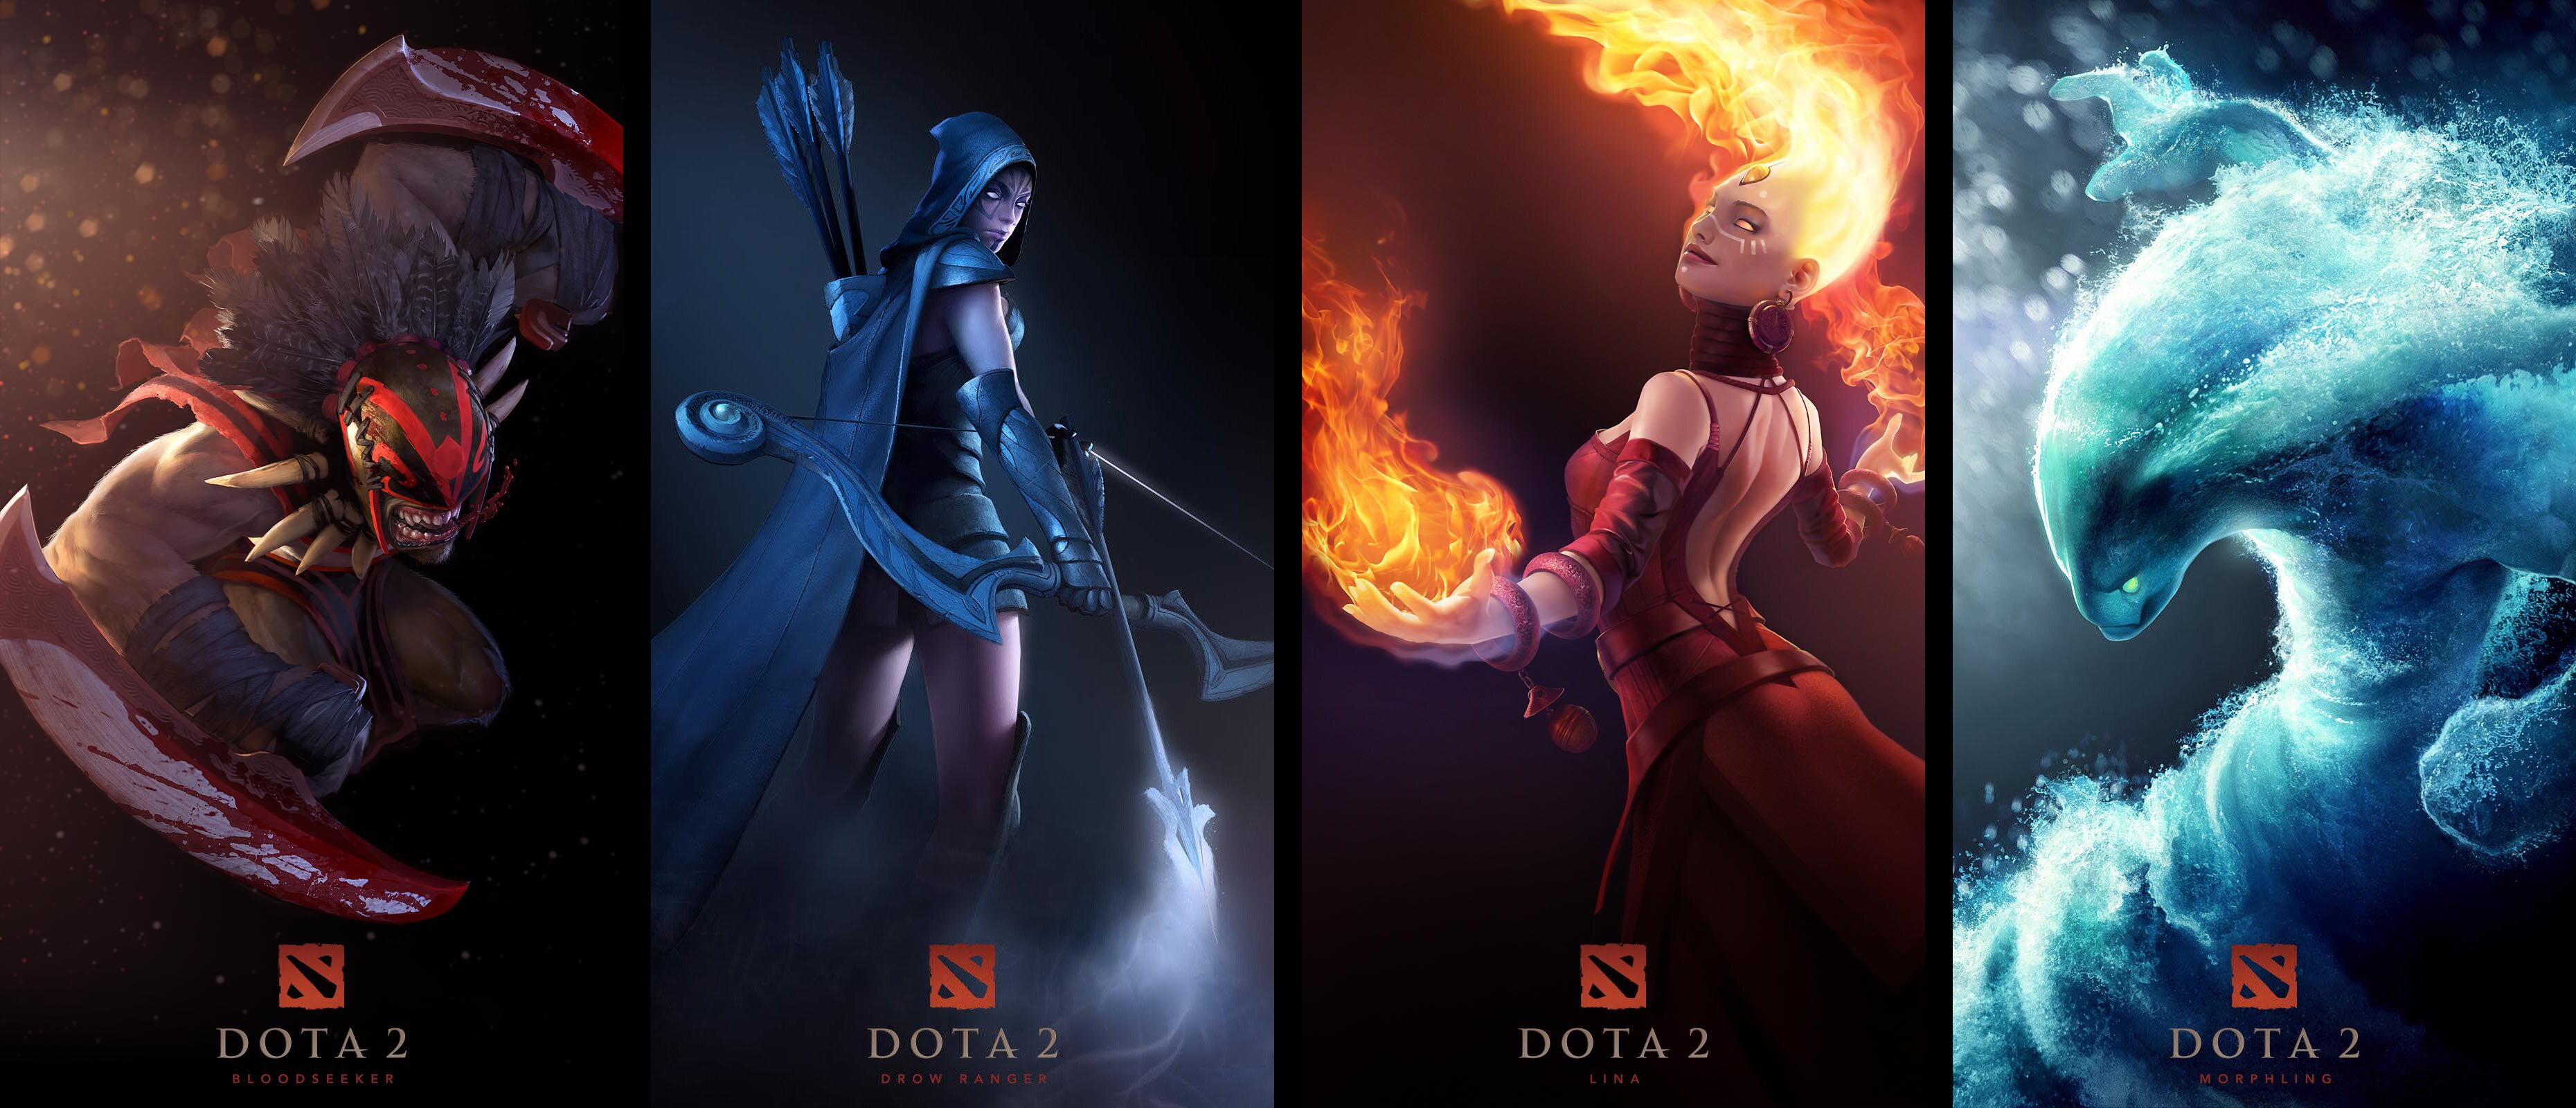 dota2wallaper La historia del DOTA: Defense Of The Ancients